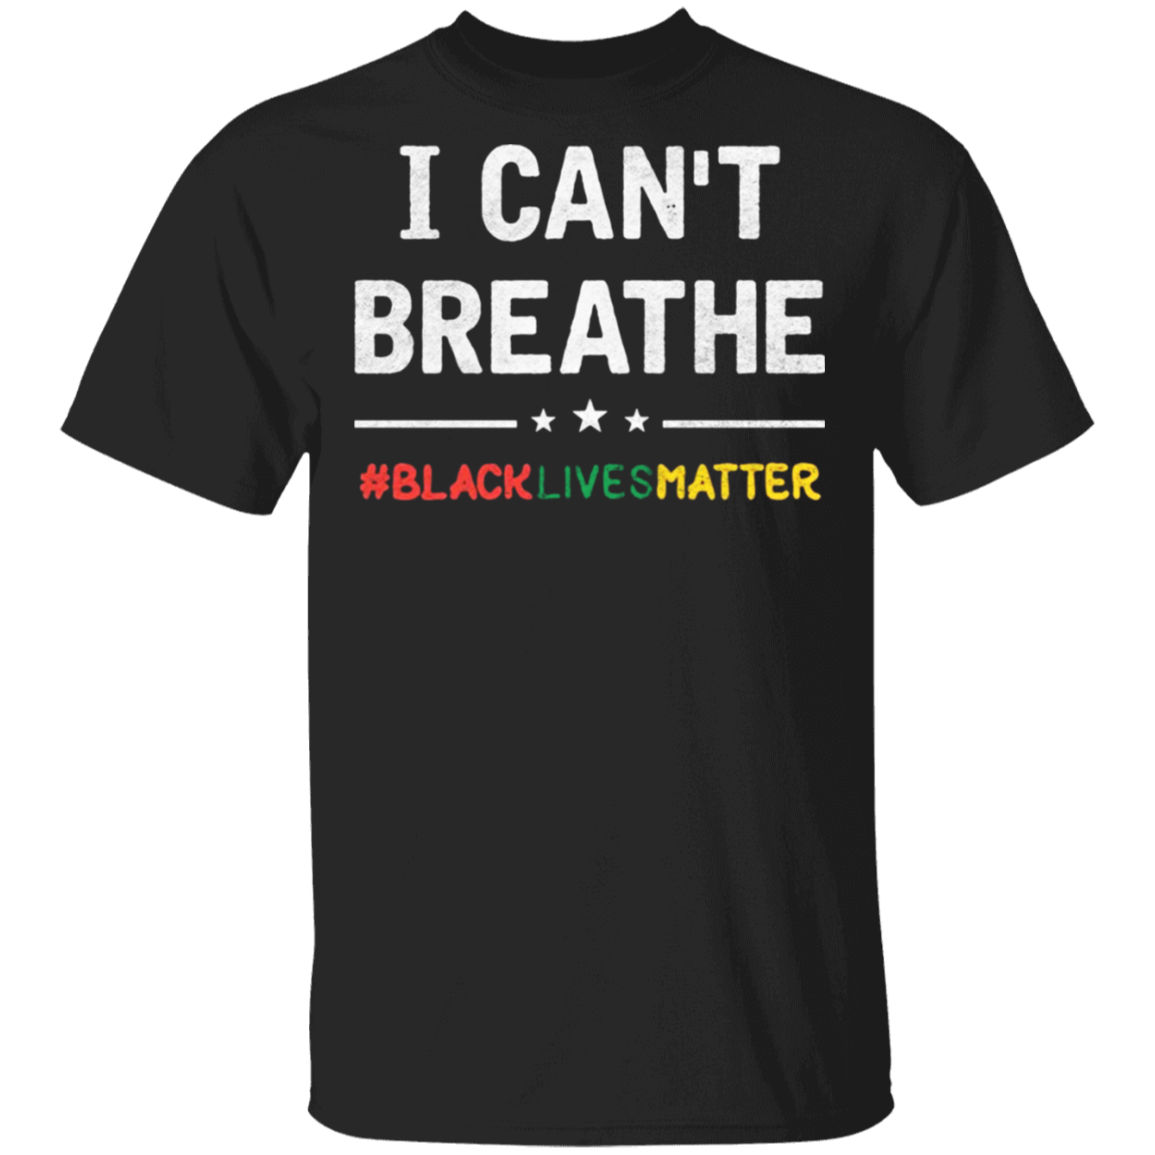 George Floyd I Can't Breathe T-Shirt, Black Lives Matter Shirts Protest